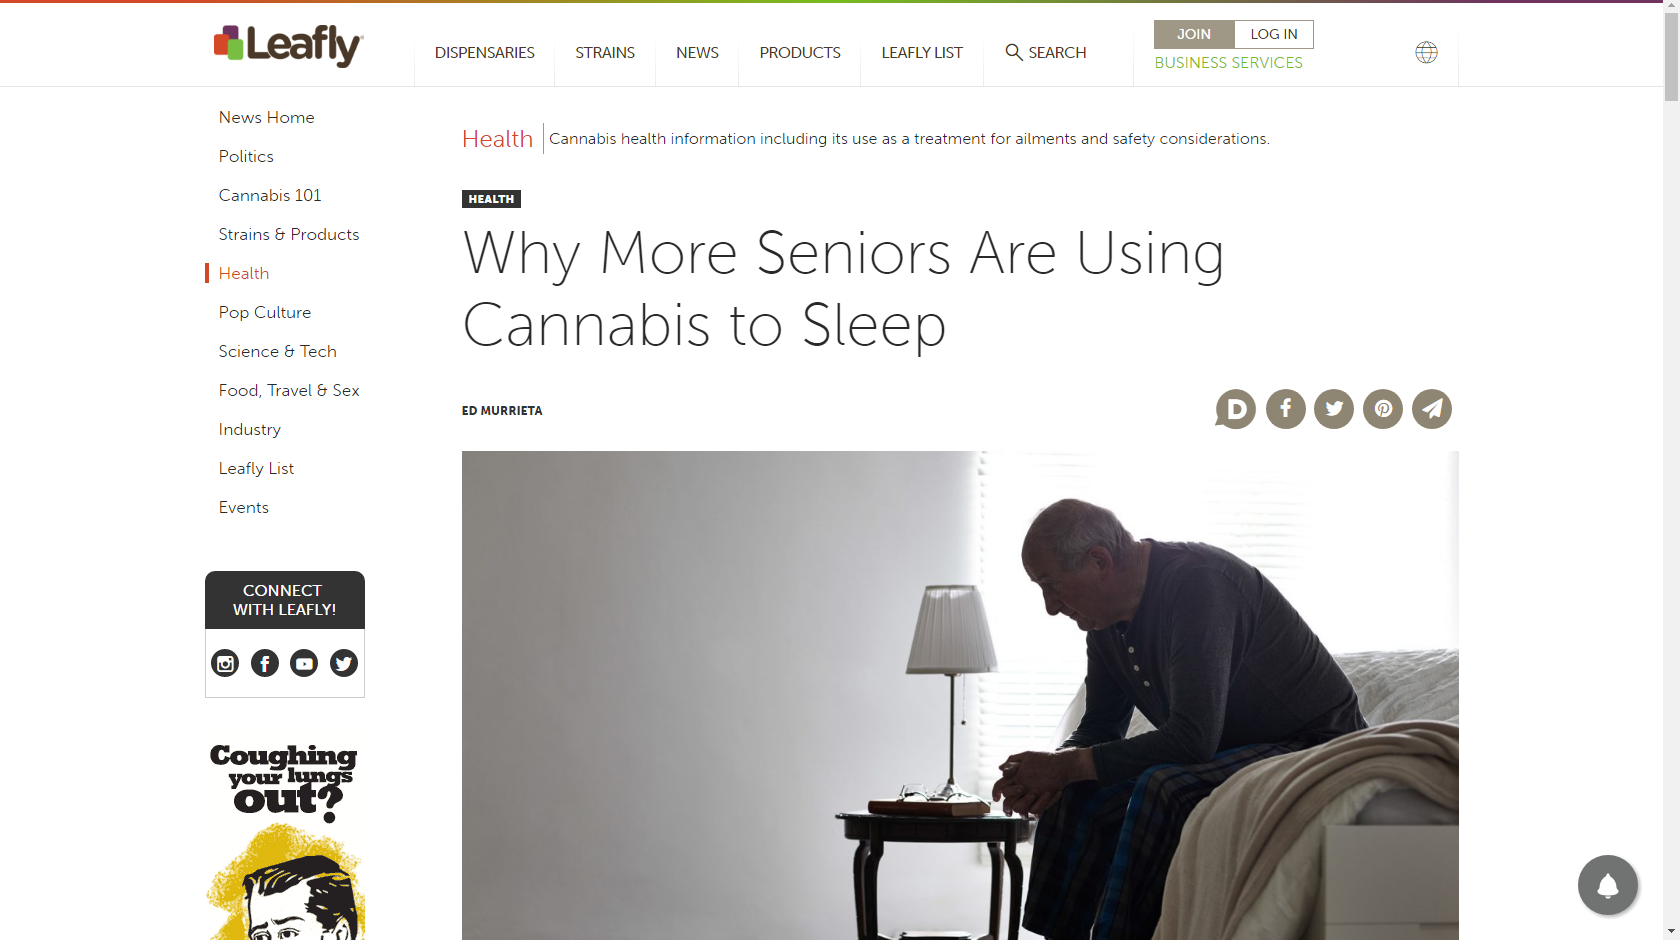 cannabis is being used by more seniors to sleep